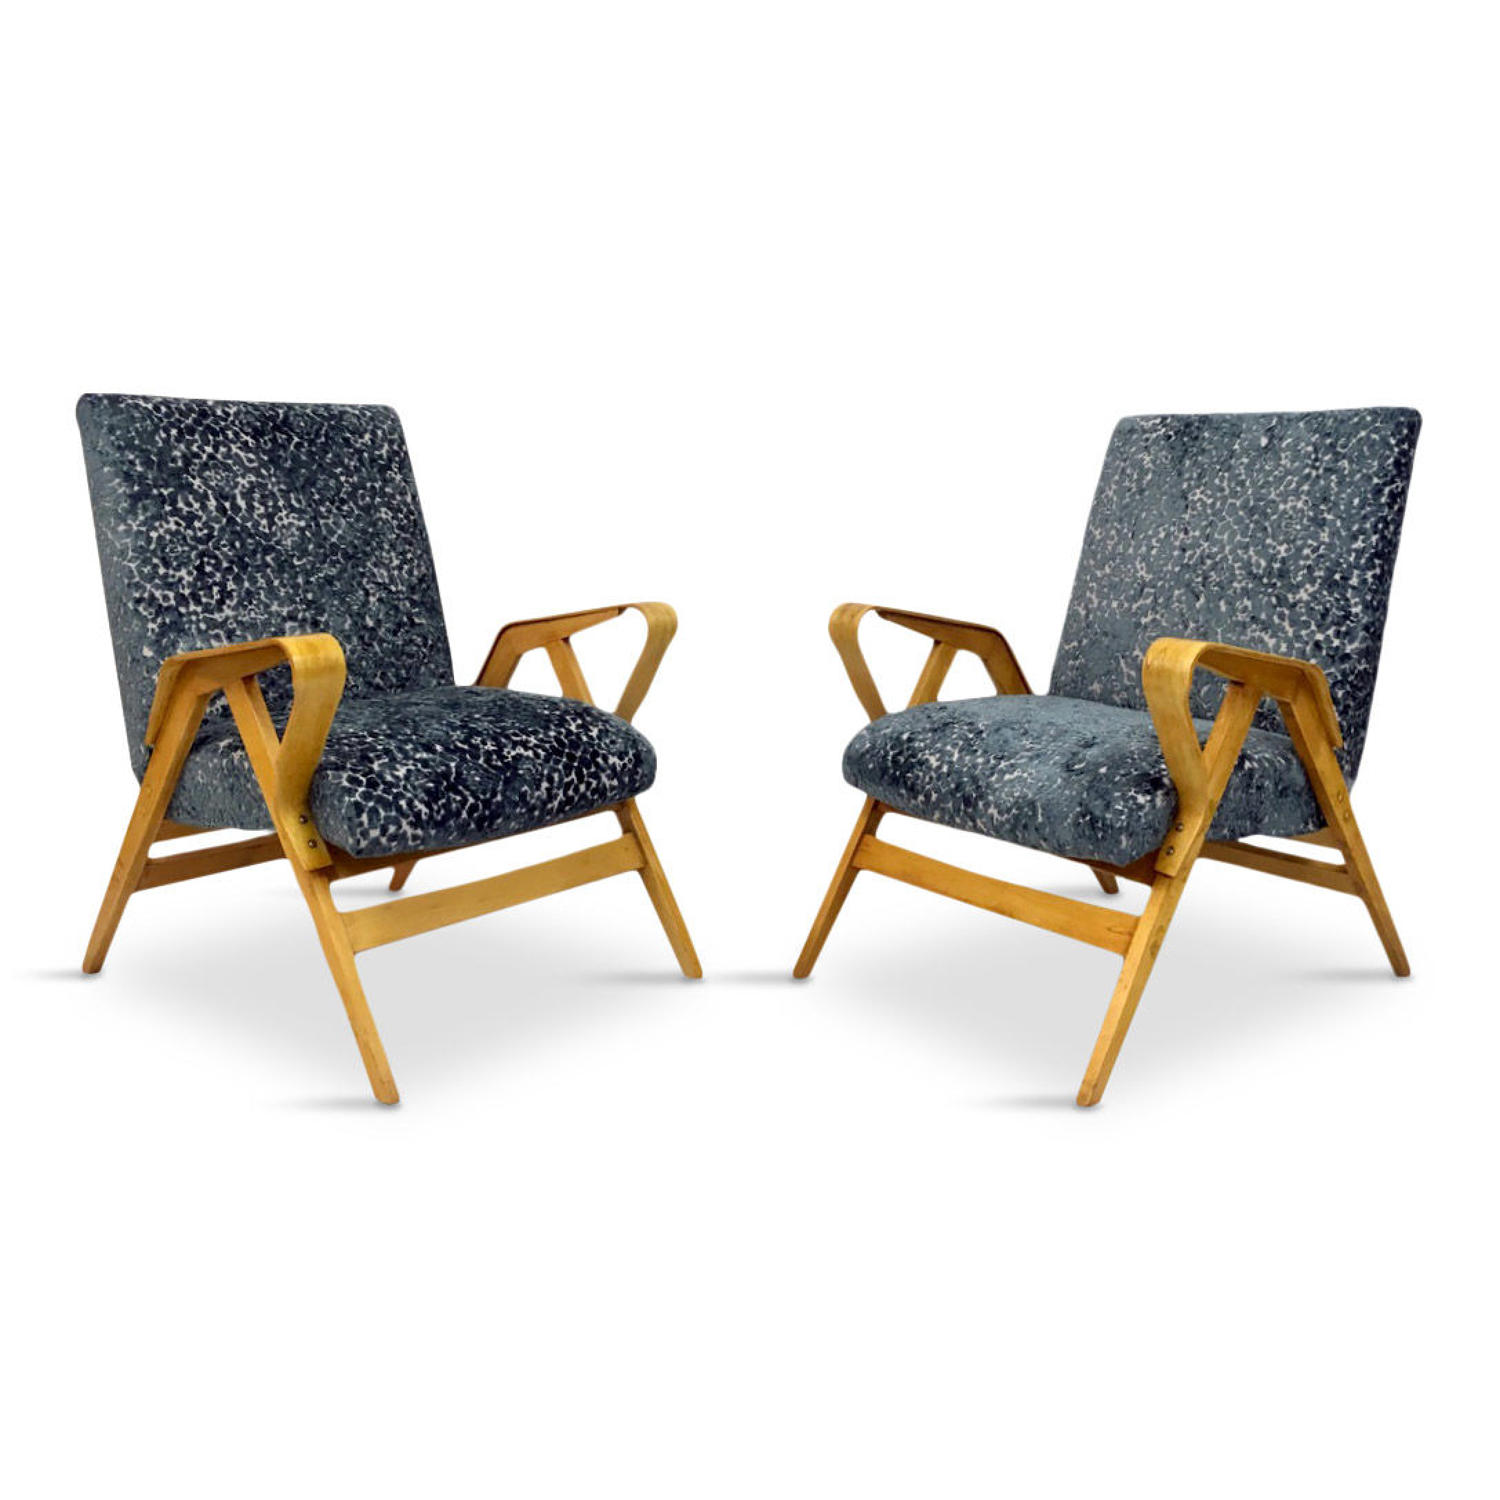 A pair of Mid Century bentwood armchairs by Tatra